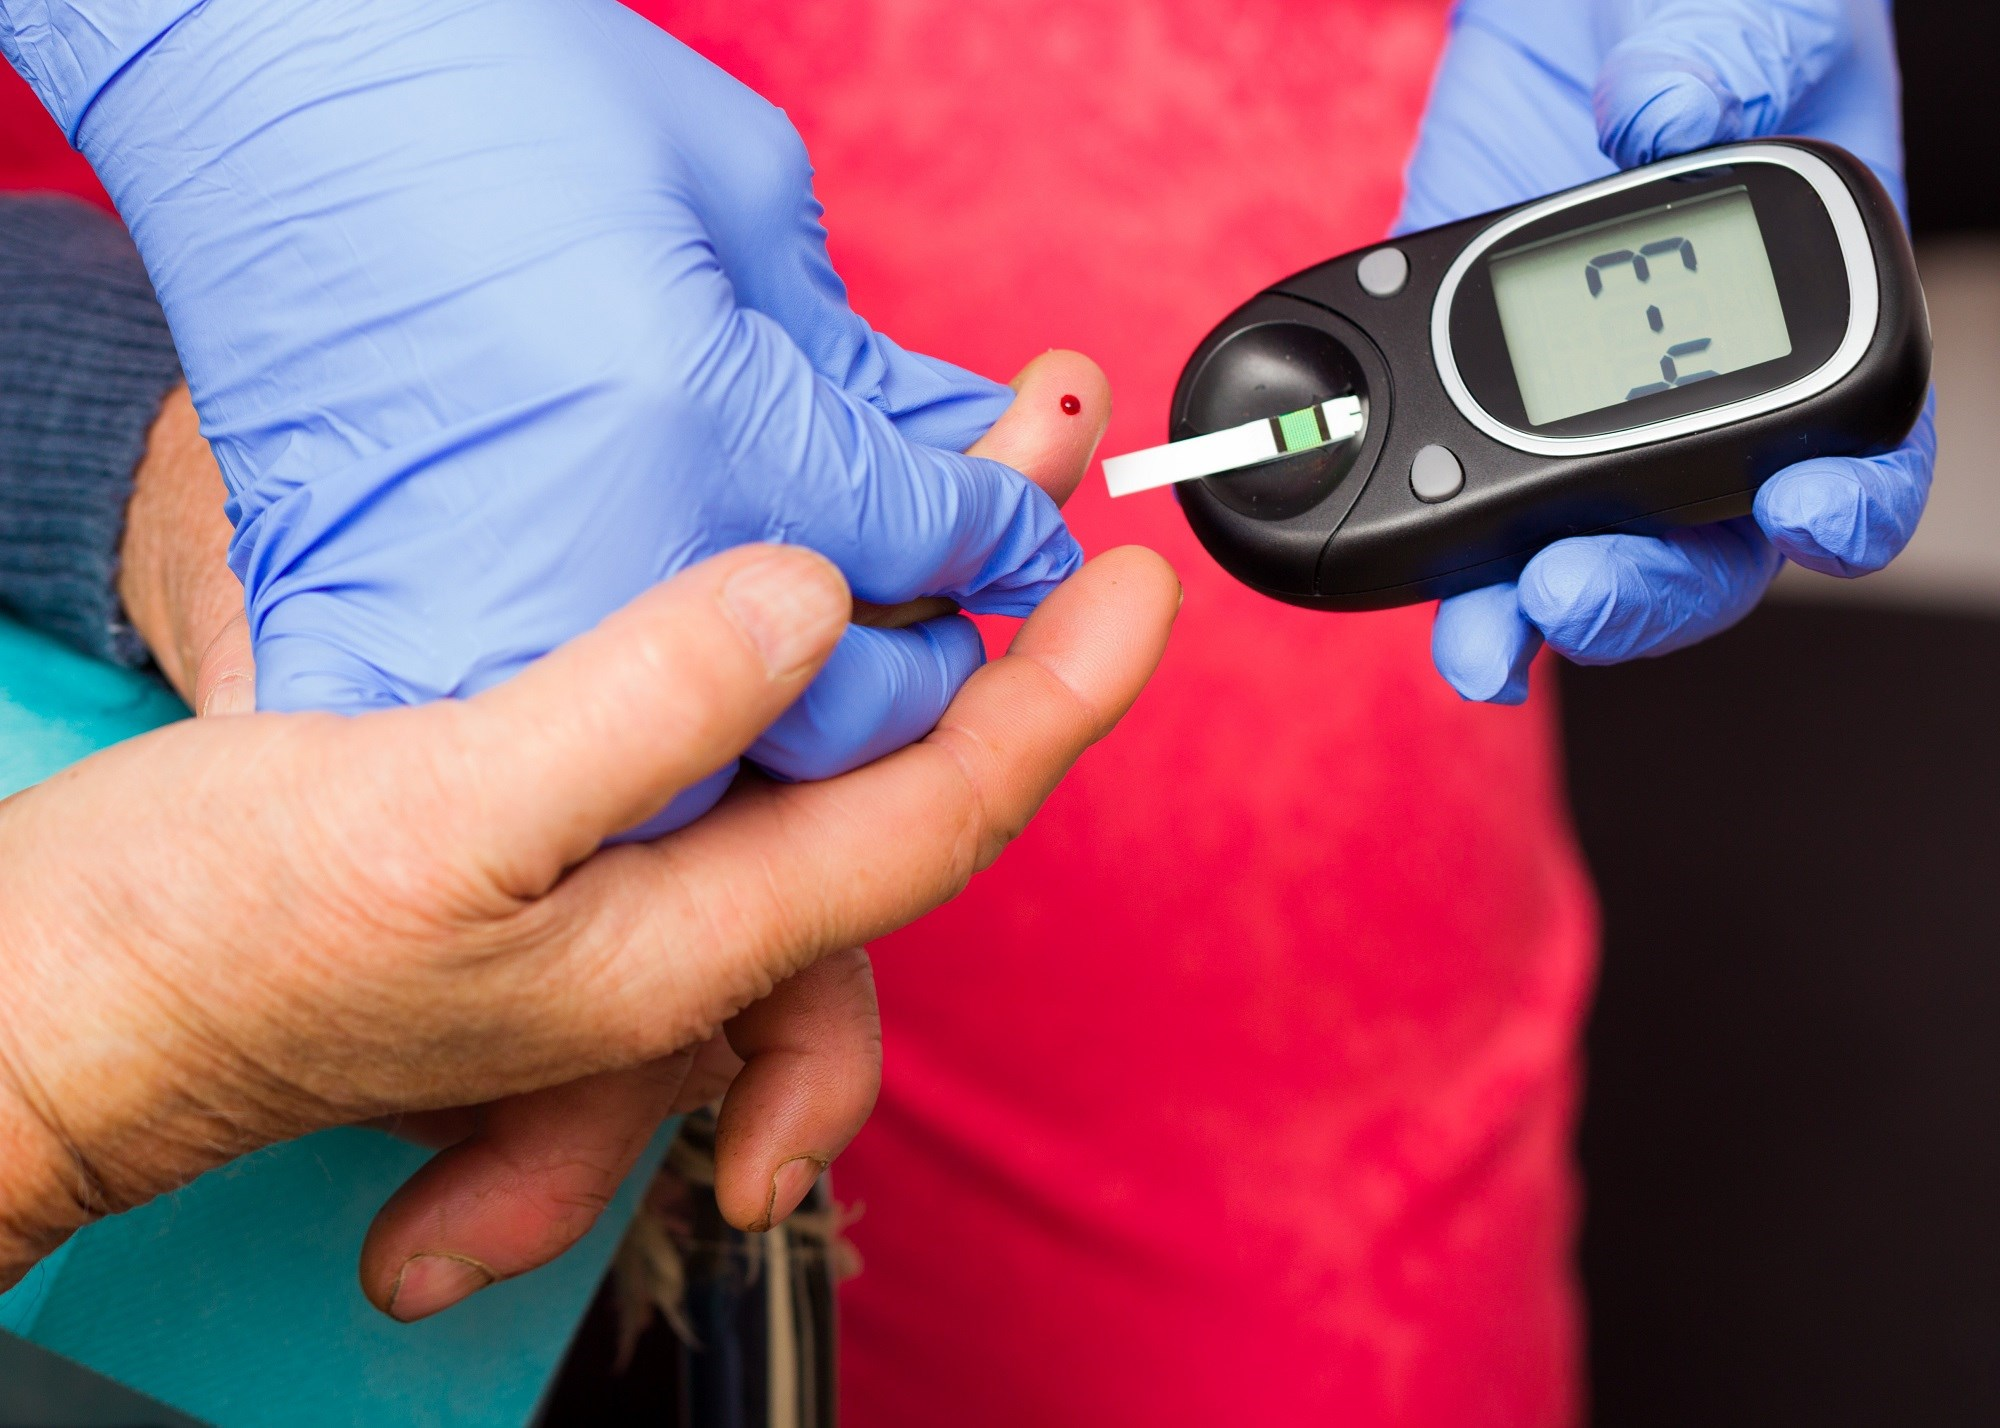 Diabetes Screening Rates Suboptimal Among Patients With Rheumatoid Arthritis